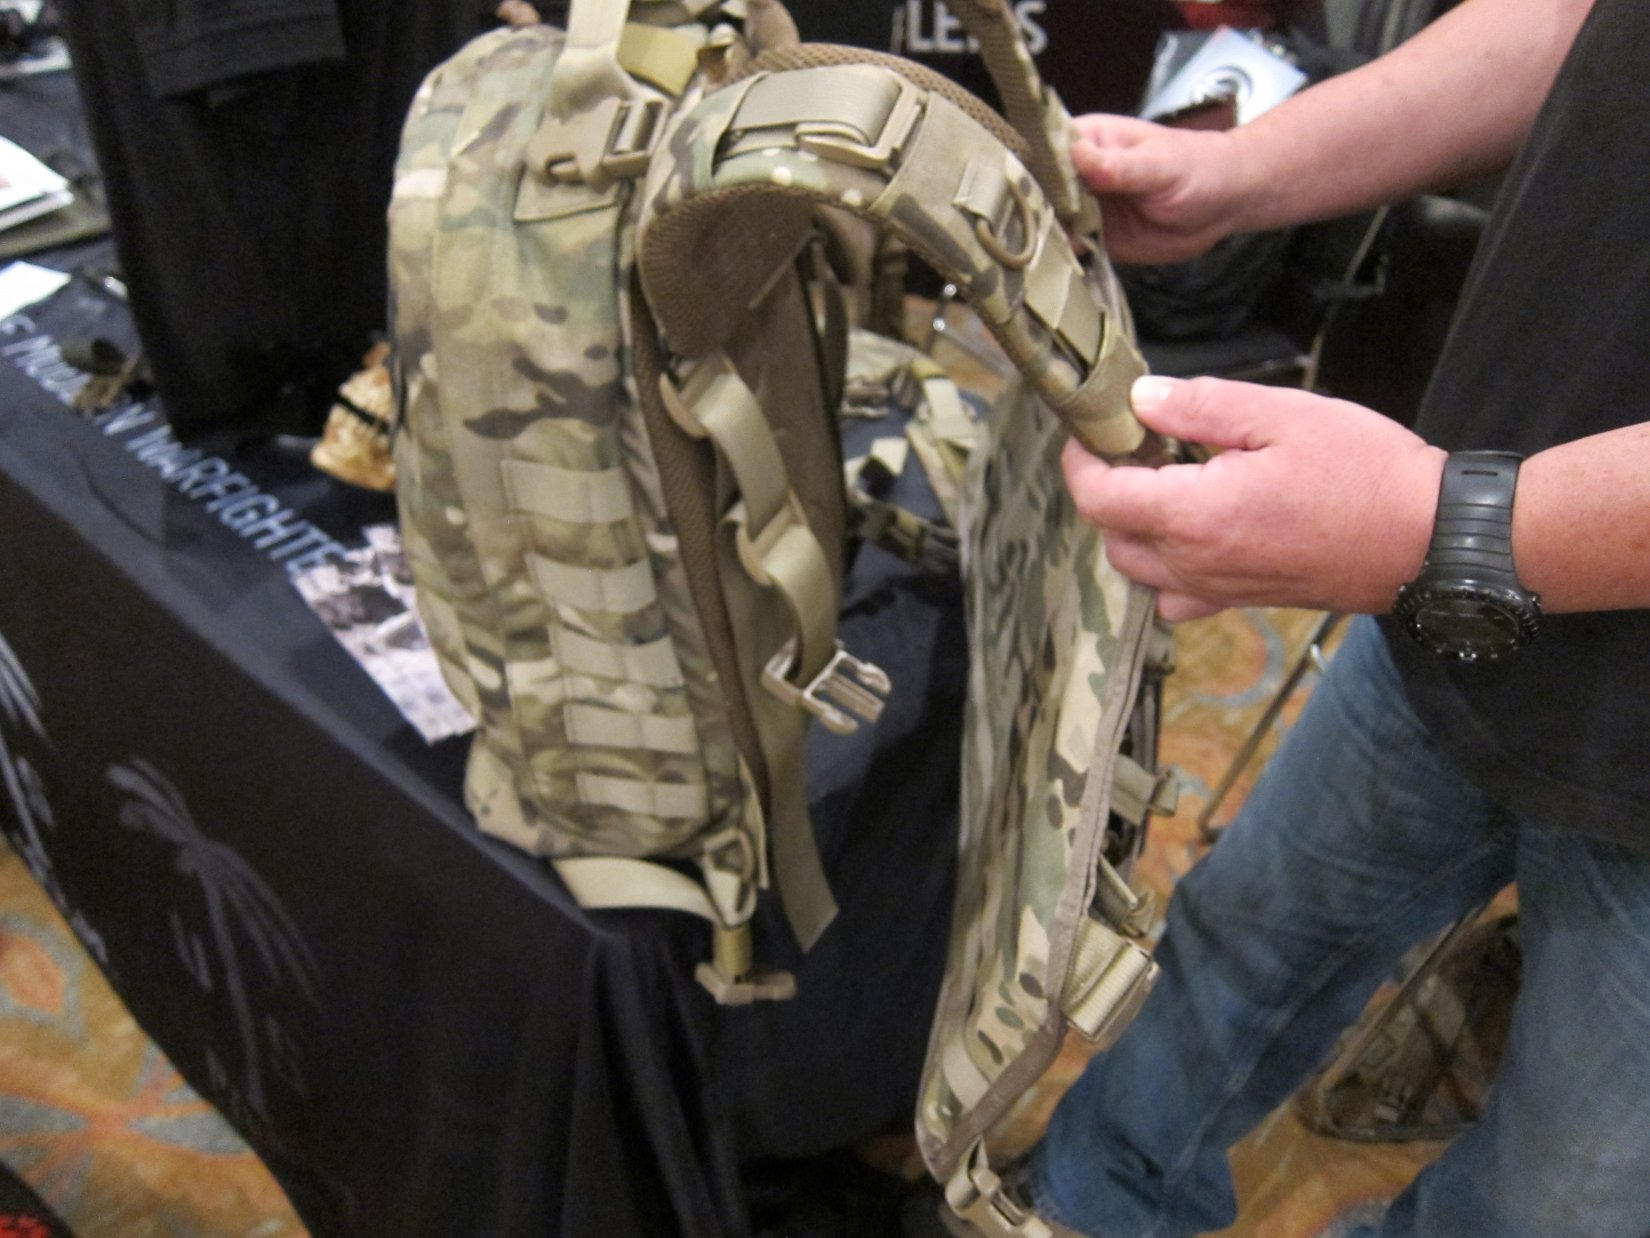 "US Palm Draco Hardened Backpack (HBP Tactical Pack)/Multi-Platform Attack Rack (MPAR) Tactical Armor Plate Carrier (Body Armor) System with ""Enhanced Harness System"" (EHS) Collar: Meet the Agile Combat System (ACS) (Video!)"